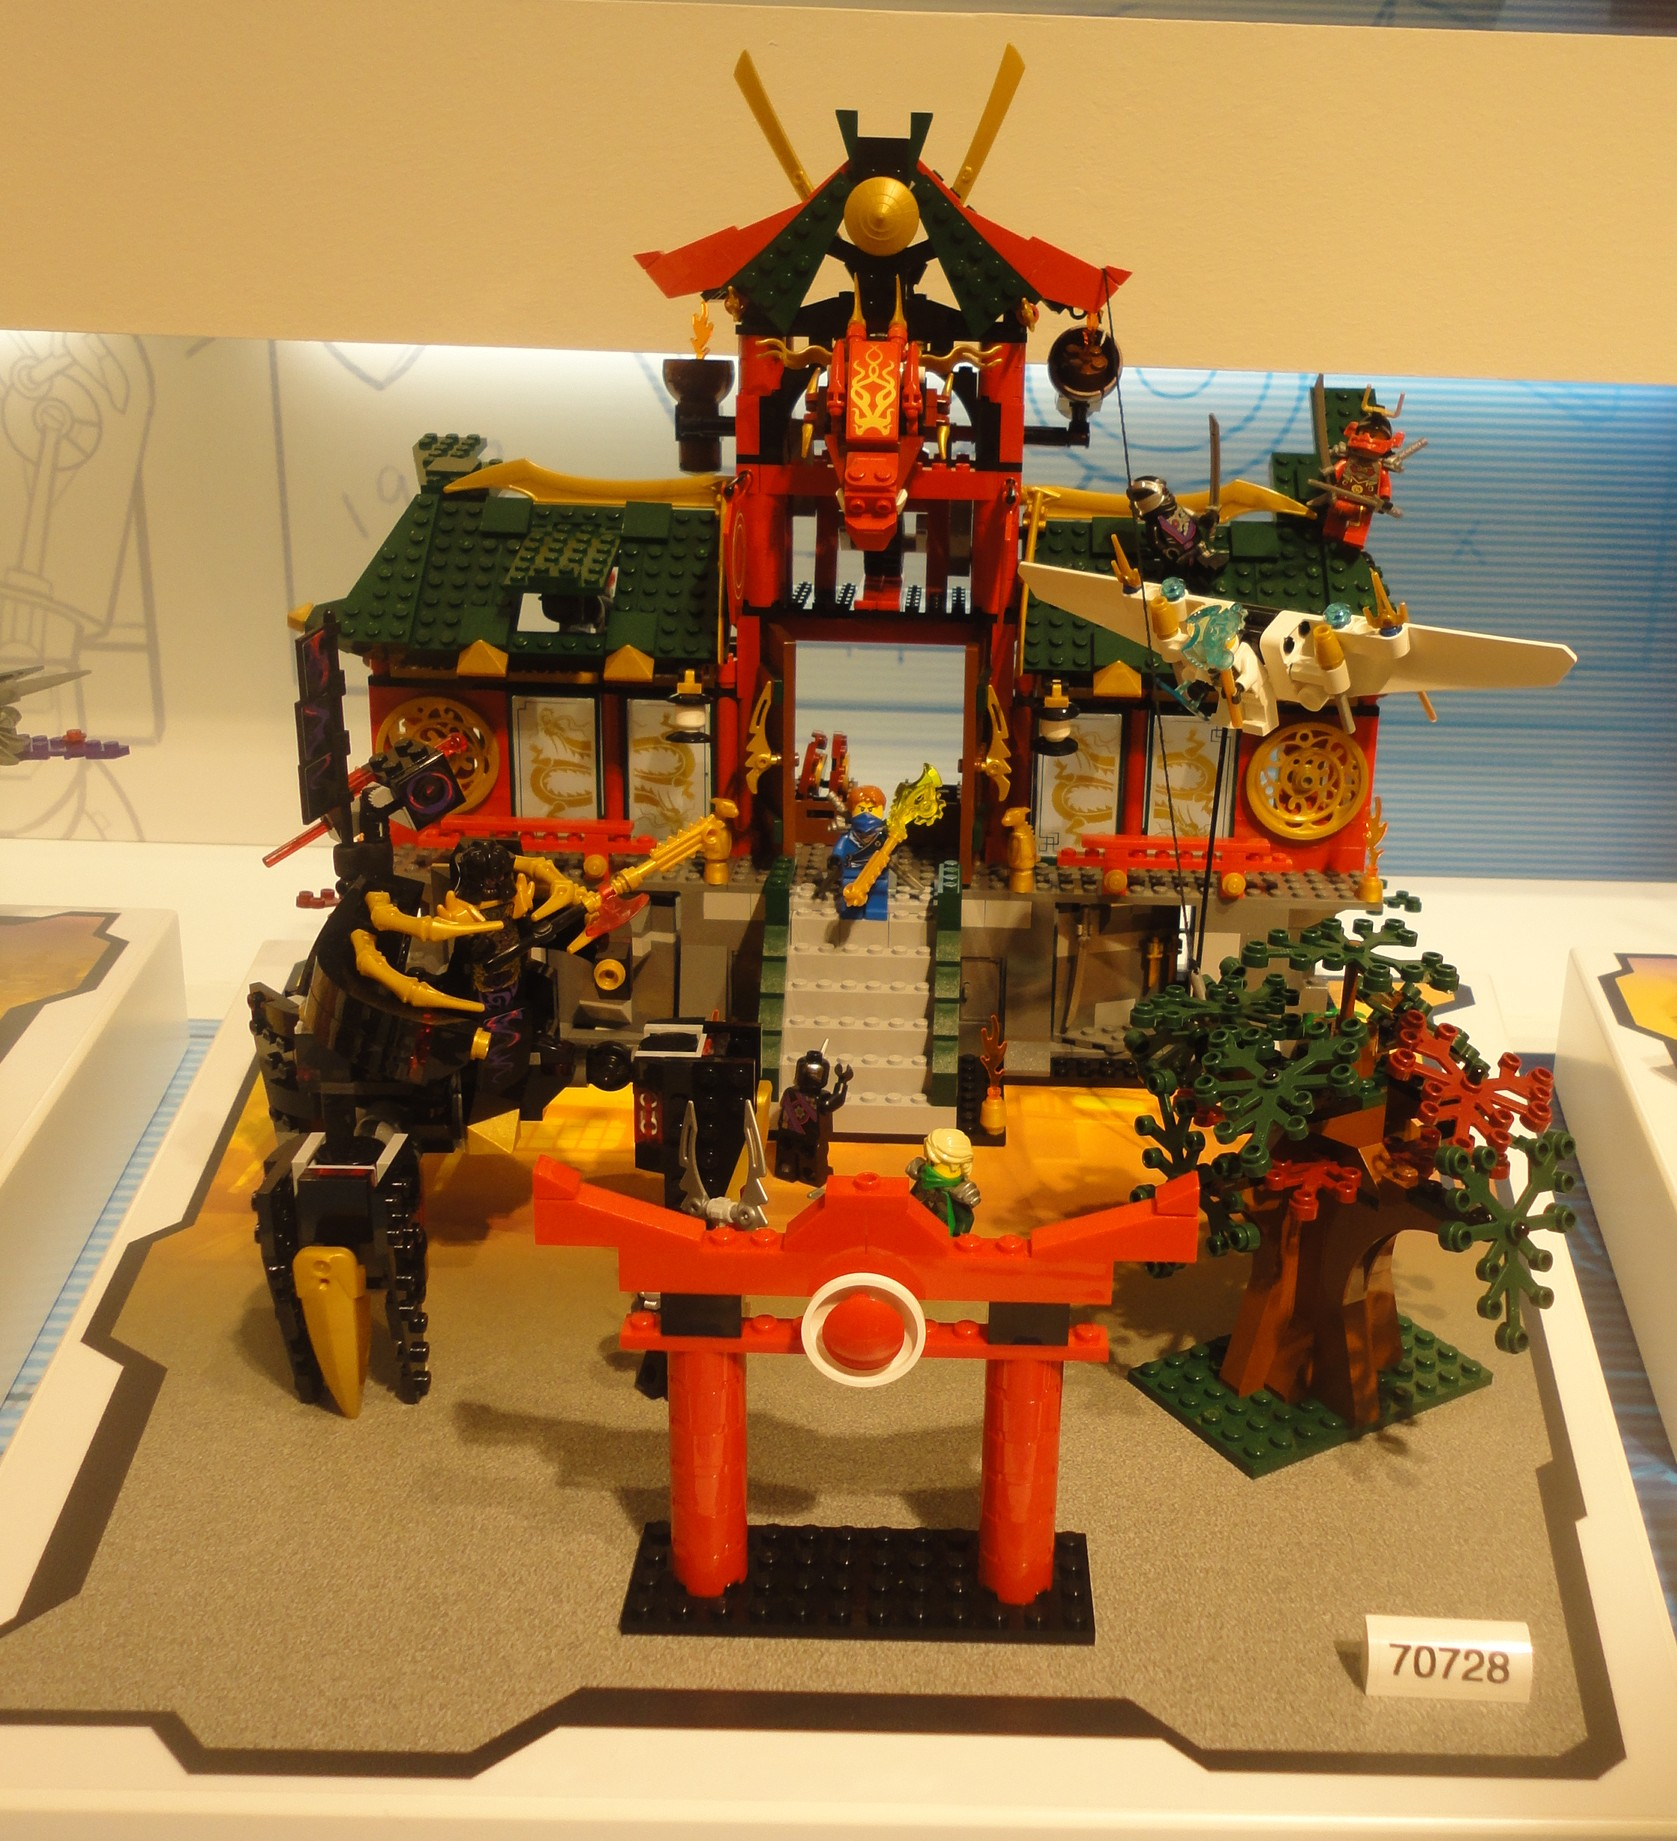 LEGO Ninjago Battle for Ninjago City 70728 Summer 2014 Set Photos